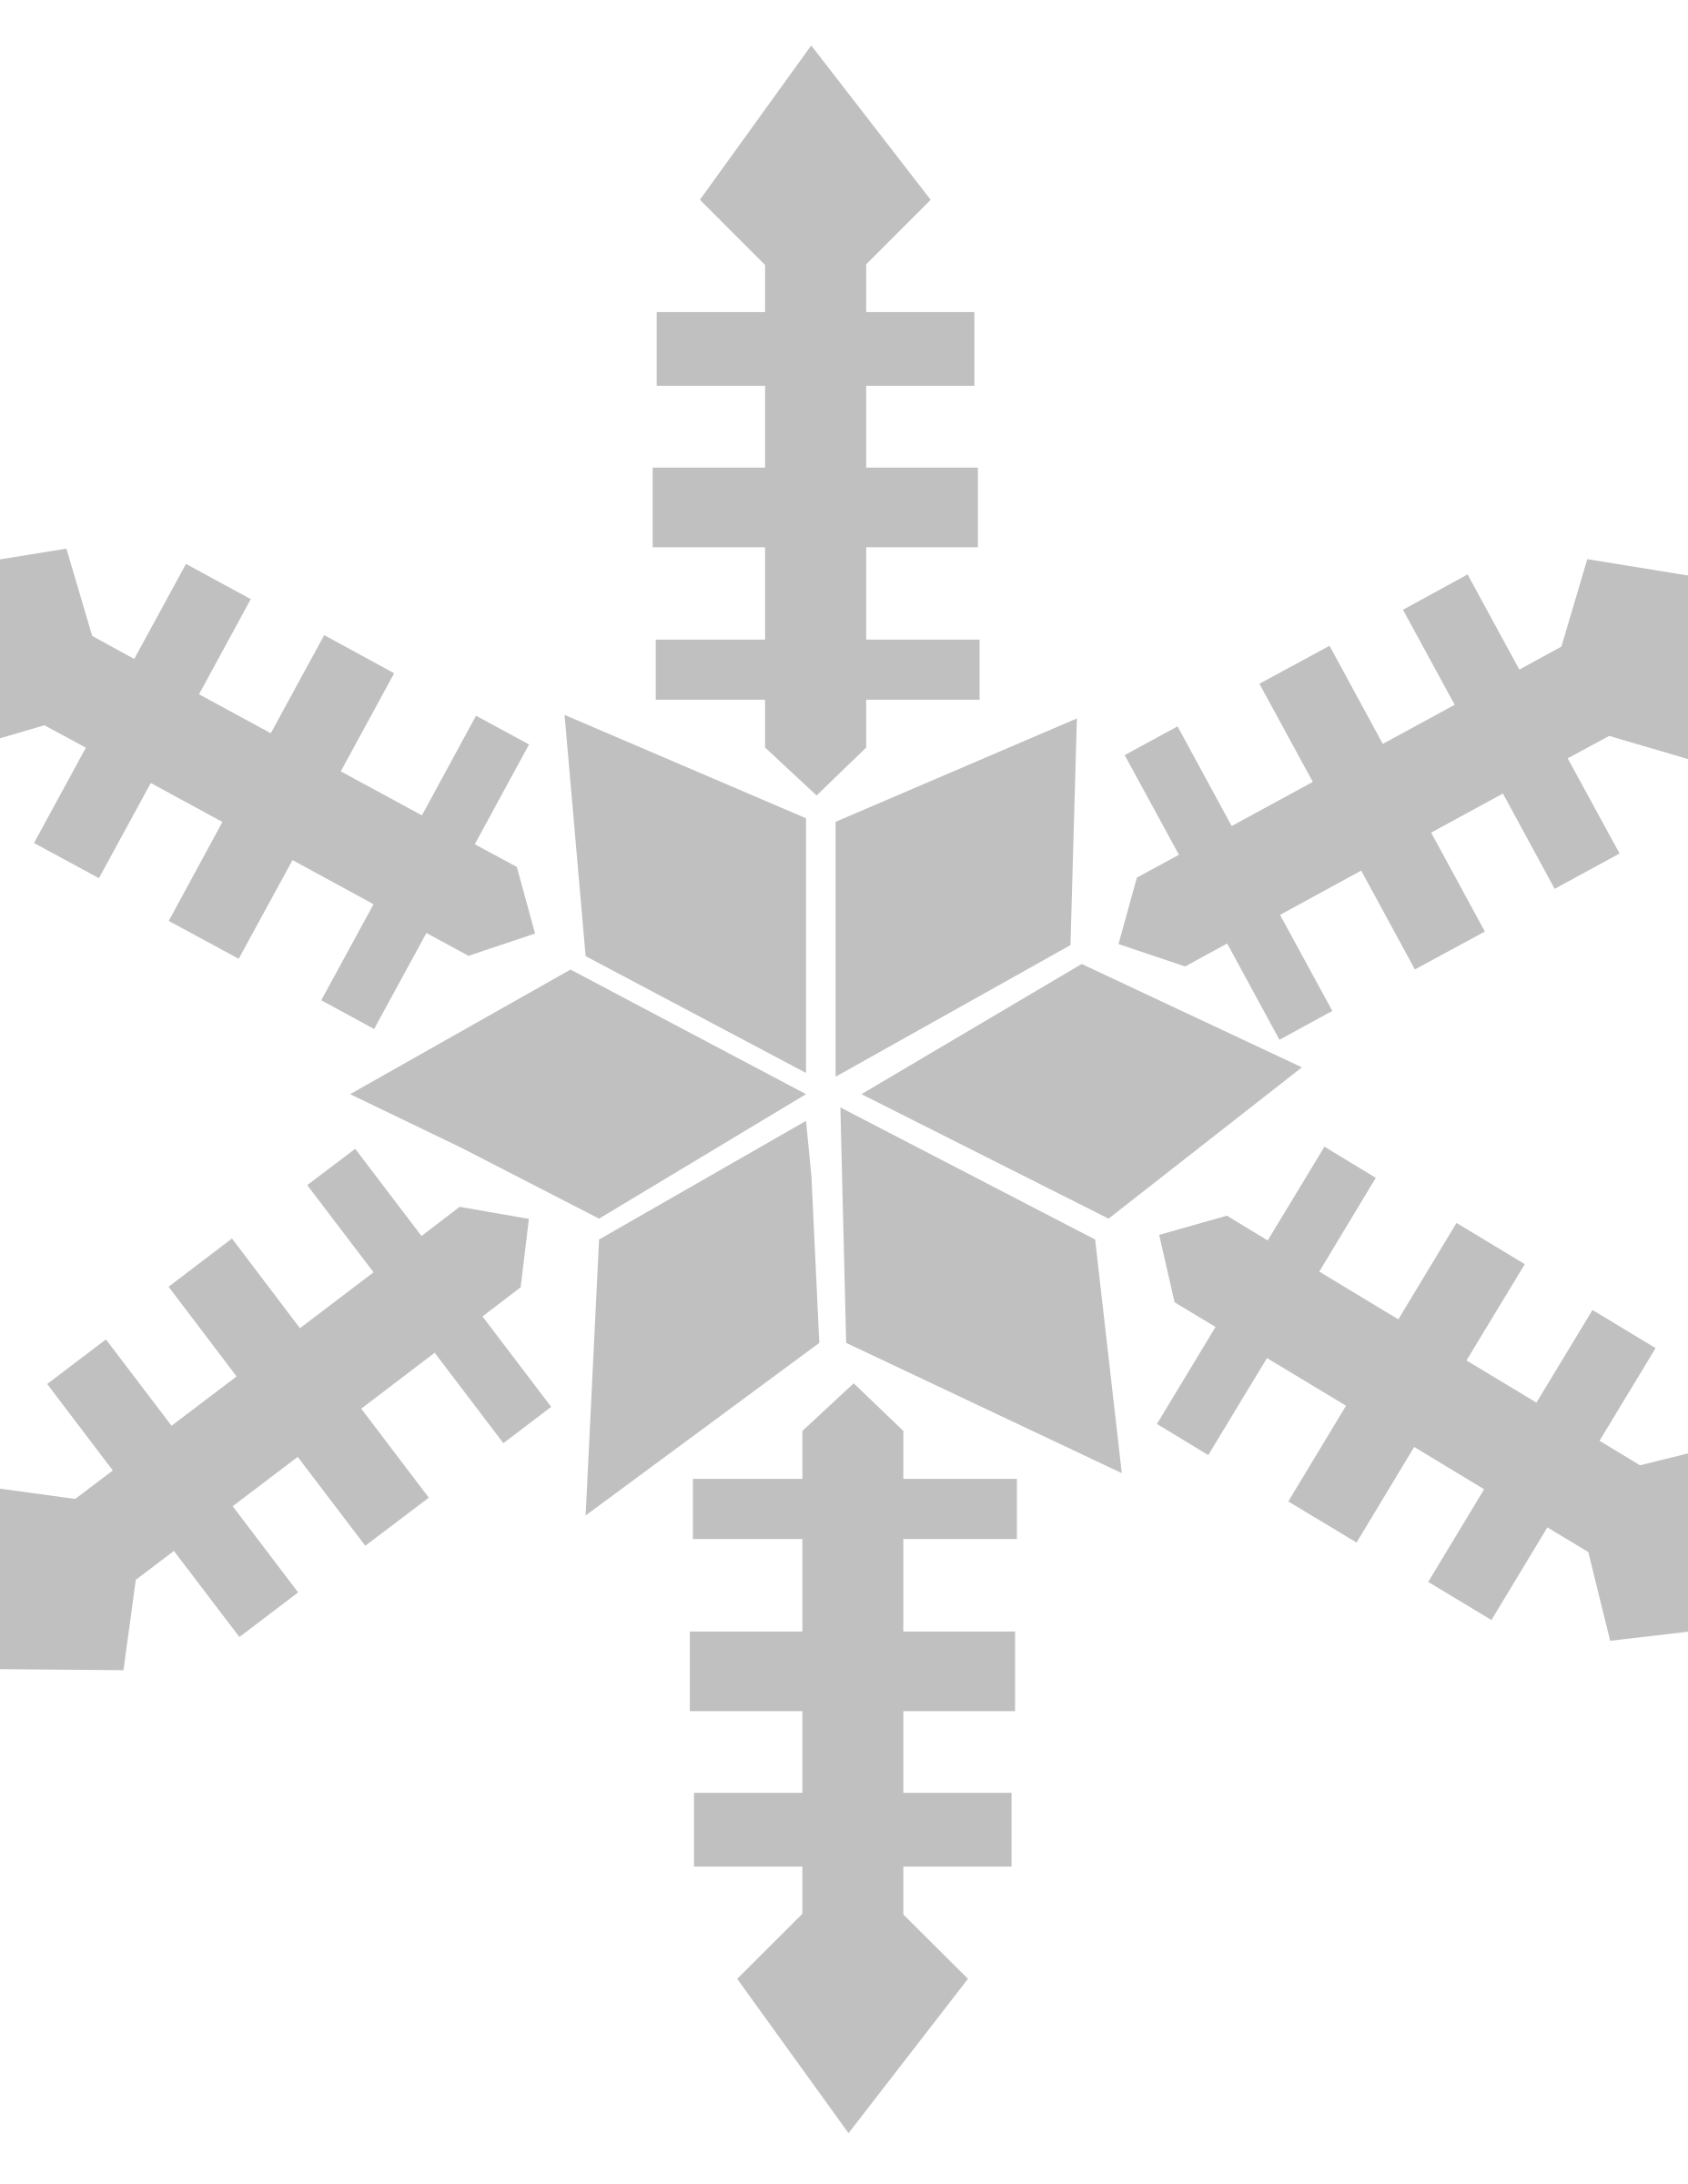 snowflake by lakeside